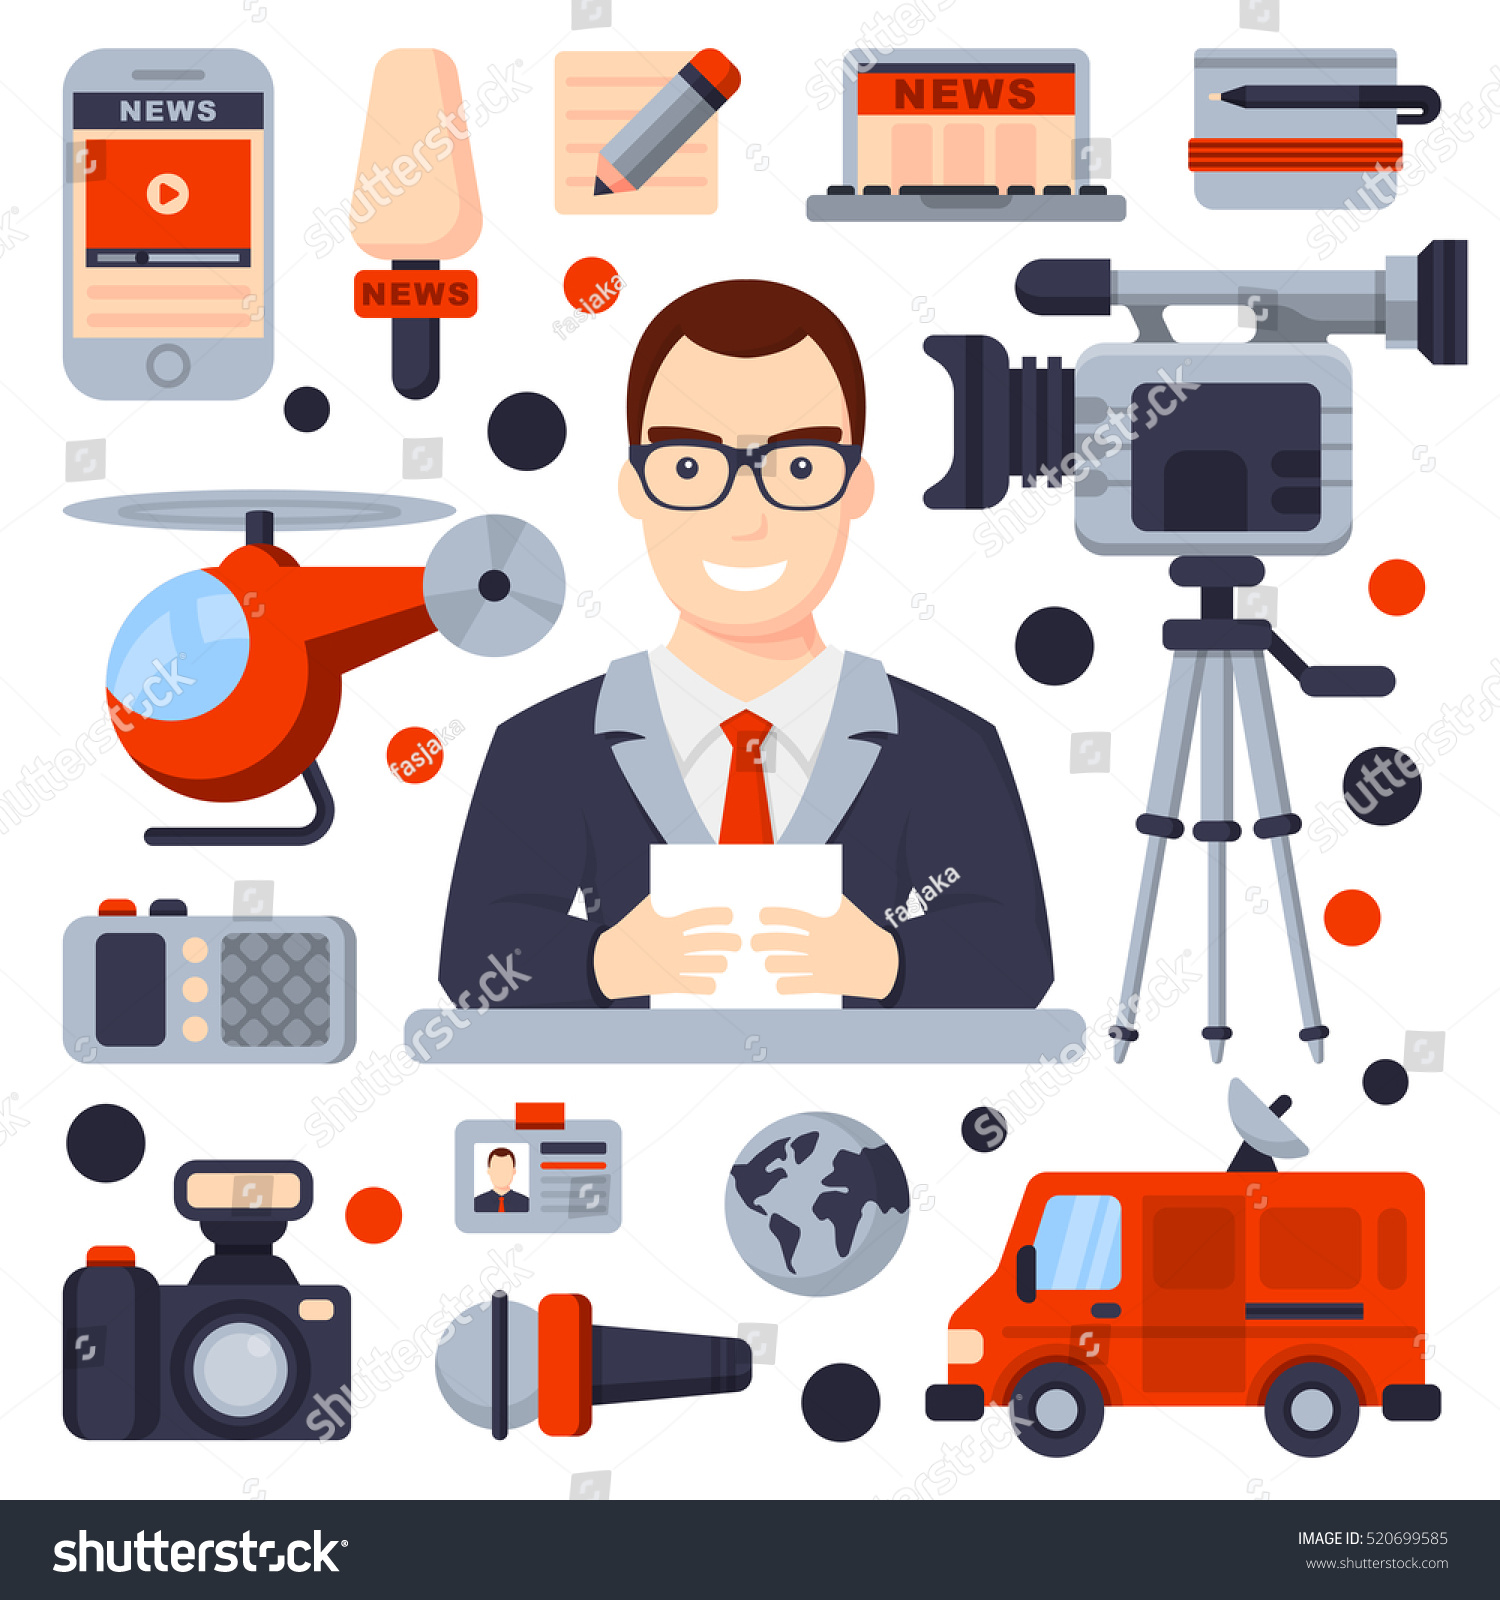 showing post media for information technology interview cartoons information technology interview cartoons illustrations flat icon set modern information